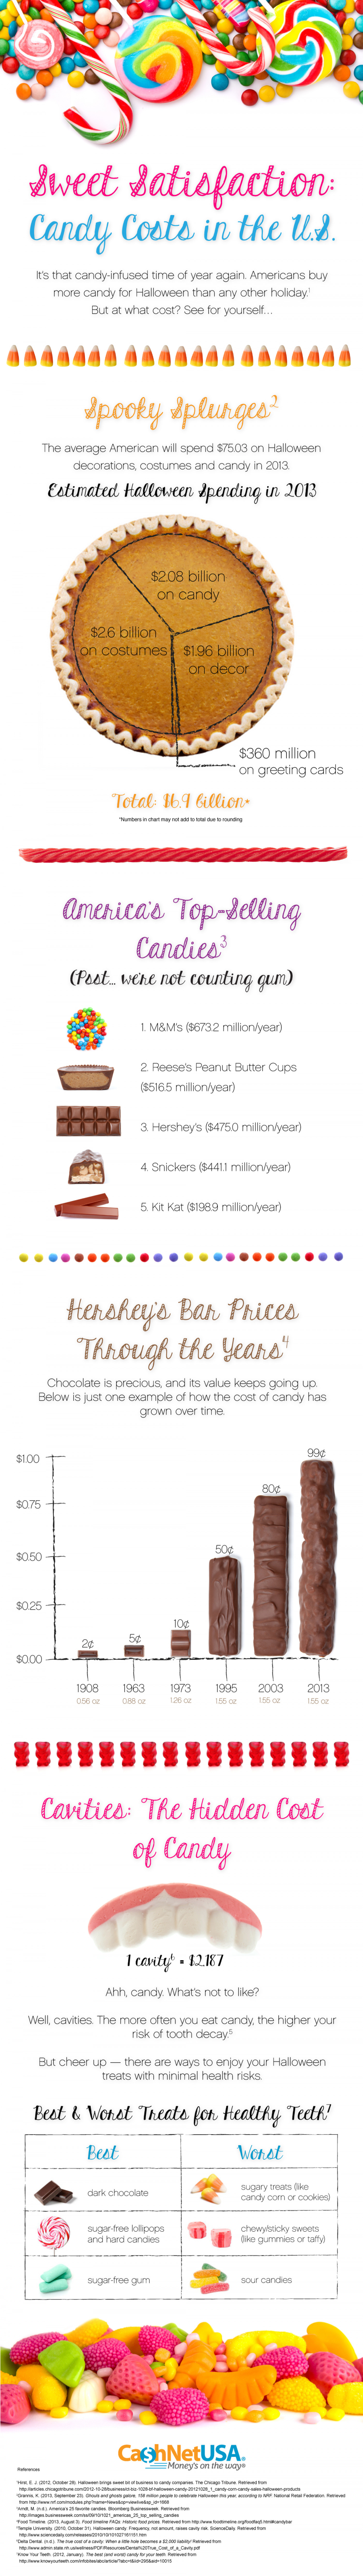 Sweet Satisfaction: Candy Costs in the U.S. Infographic